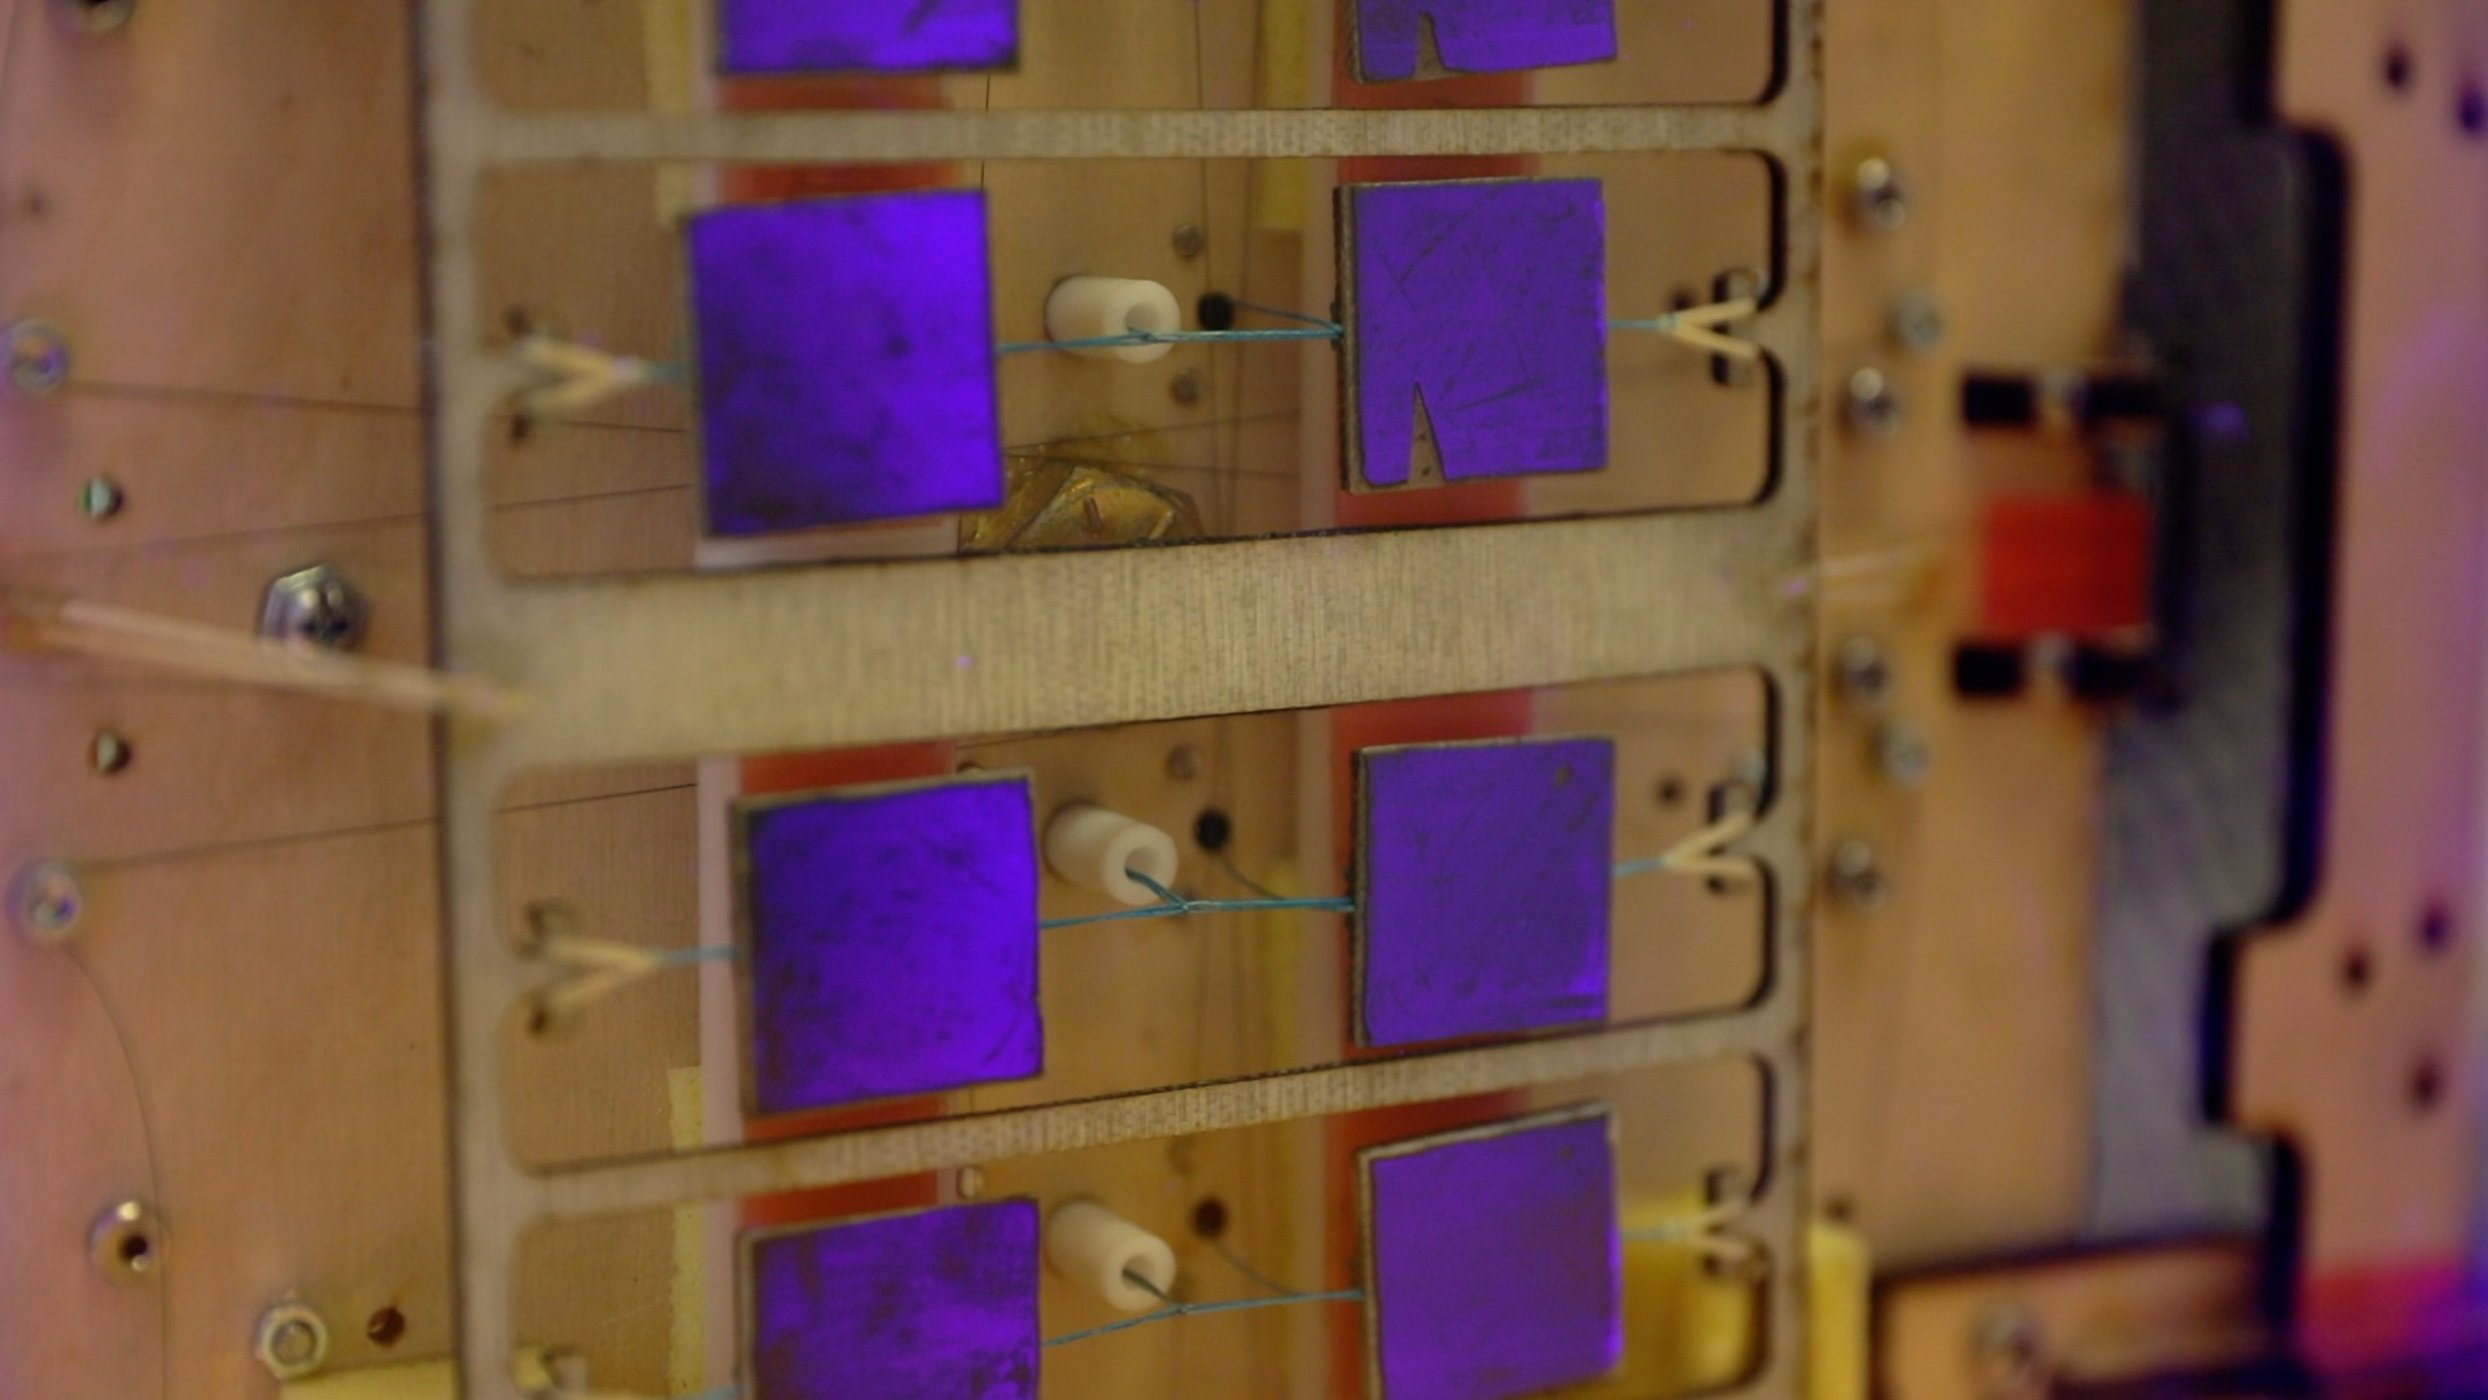 The purple squares are grippers using gecko-inspired physics to grab onto objects.